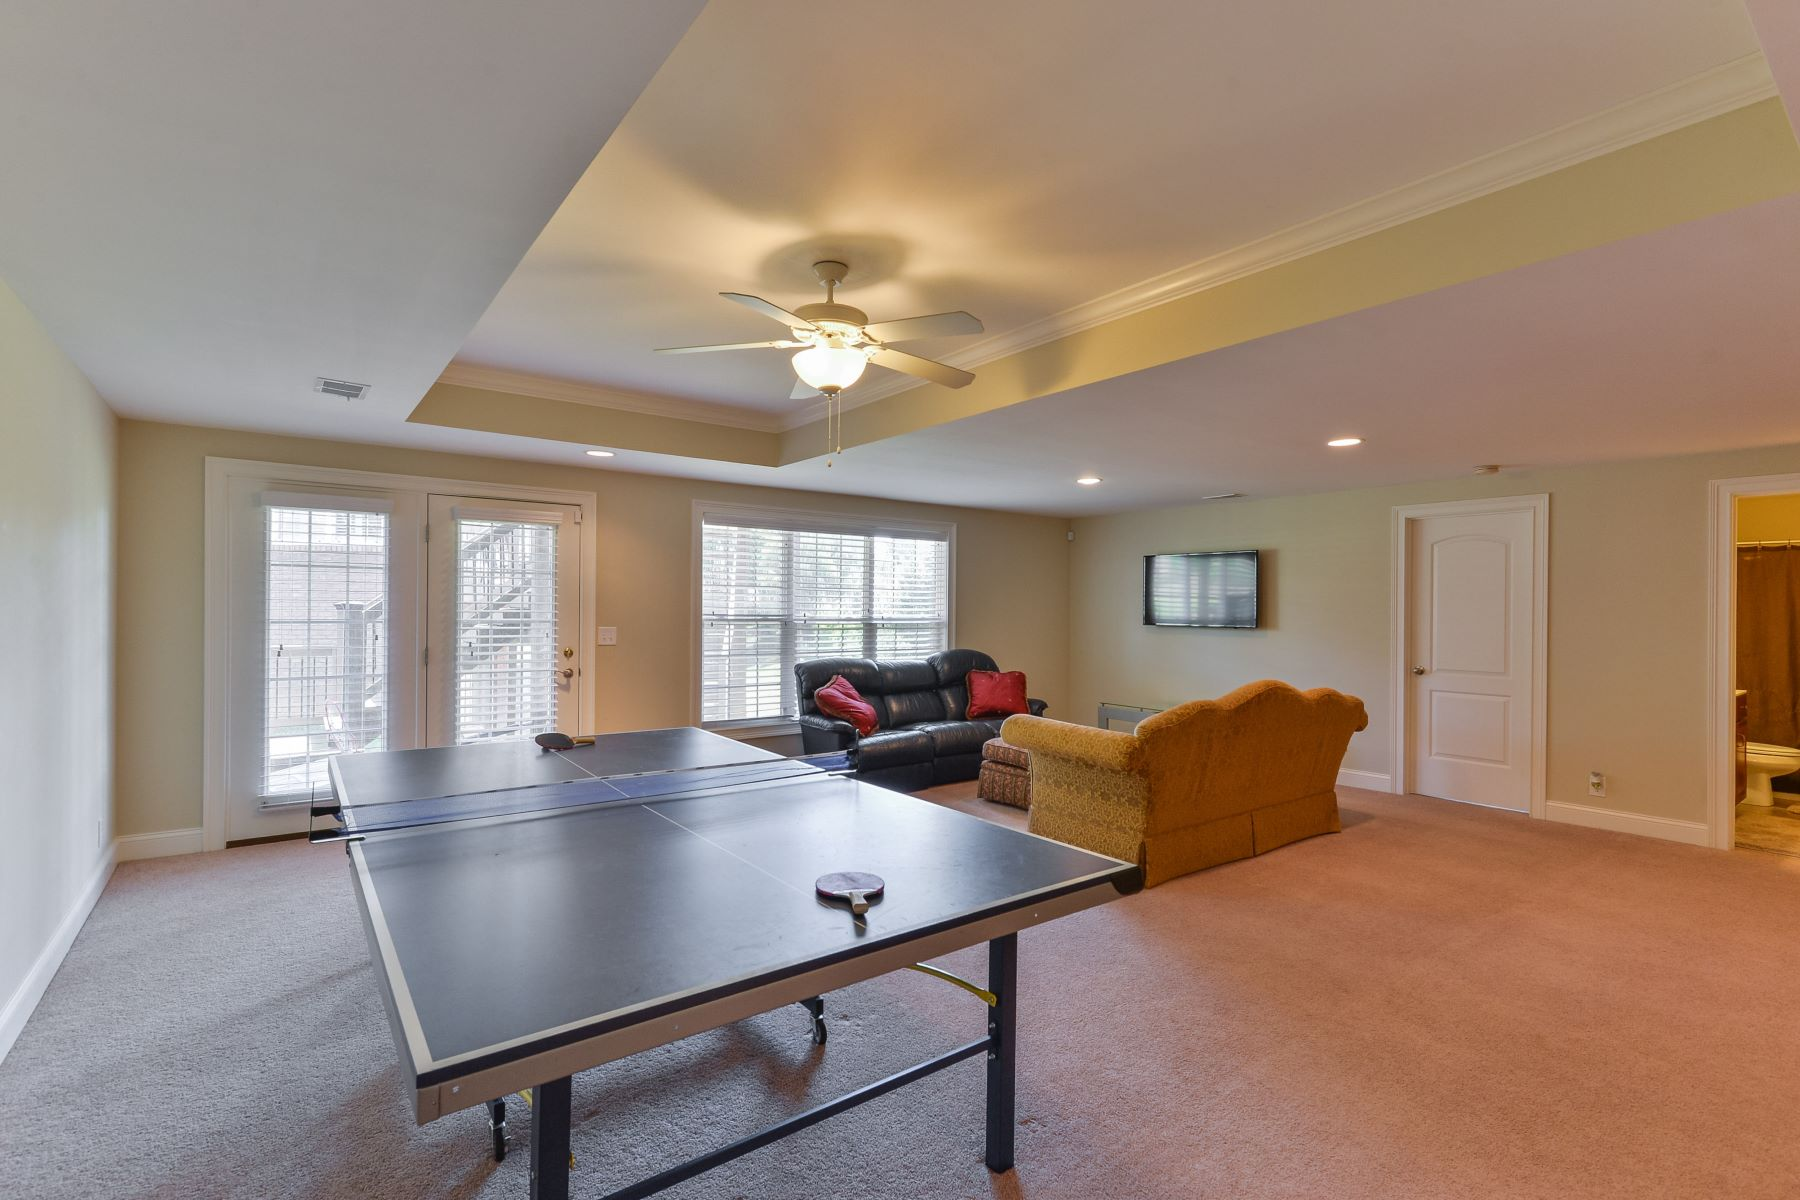 Additional photo for property listing at 4103 Ethan Cole Court 4103 Ethan Cole Court Prospect, Kentucky 40059 United States